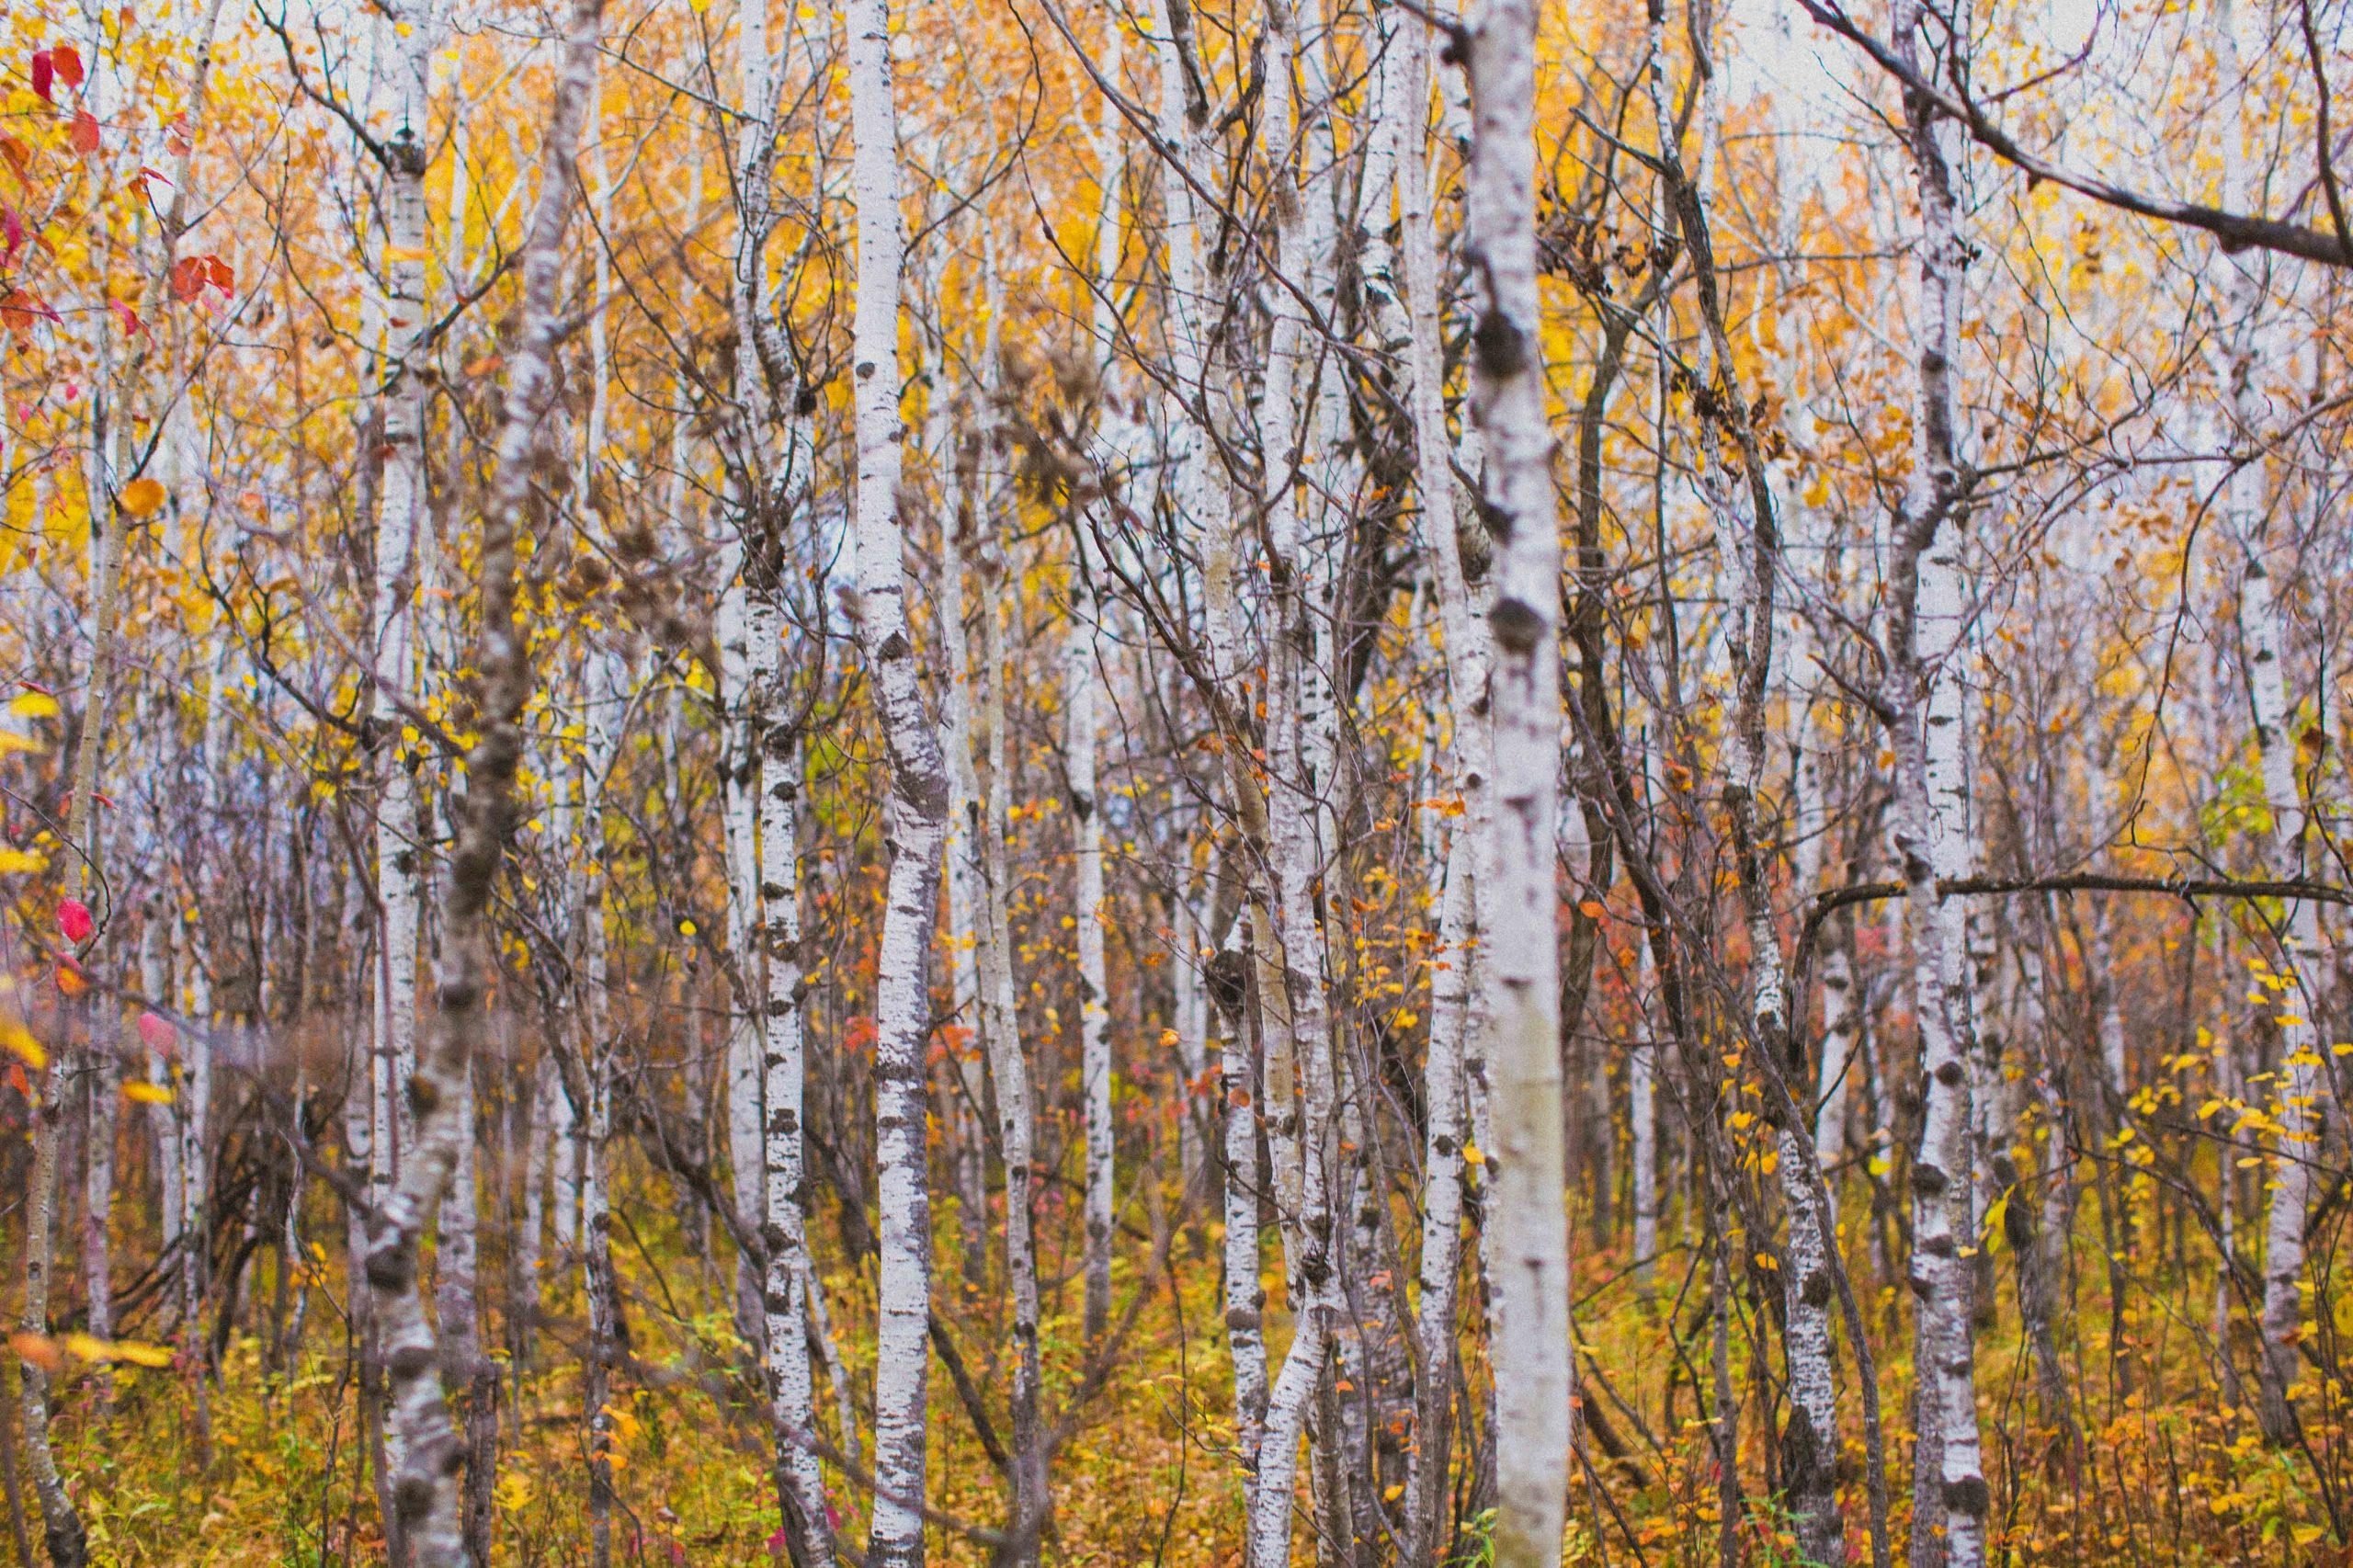 An autumn forest with yellow and orange leaves